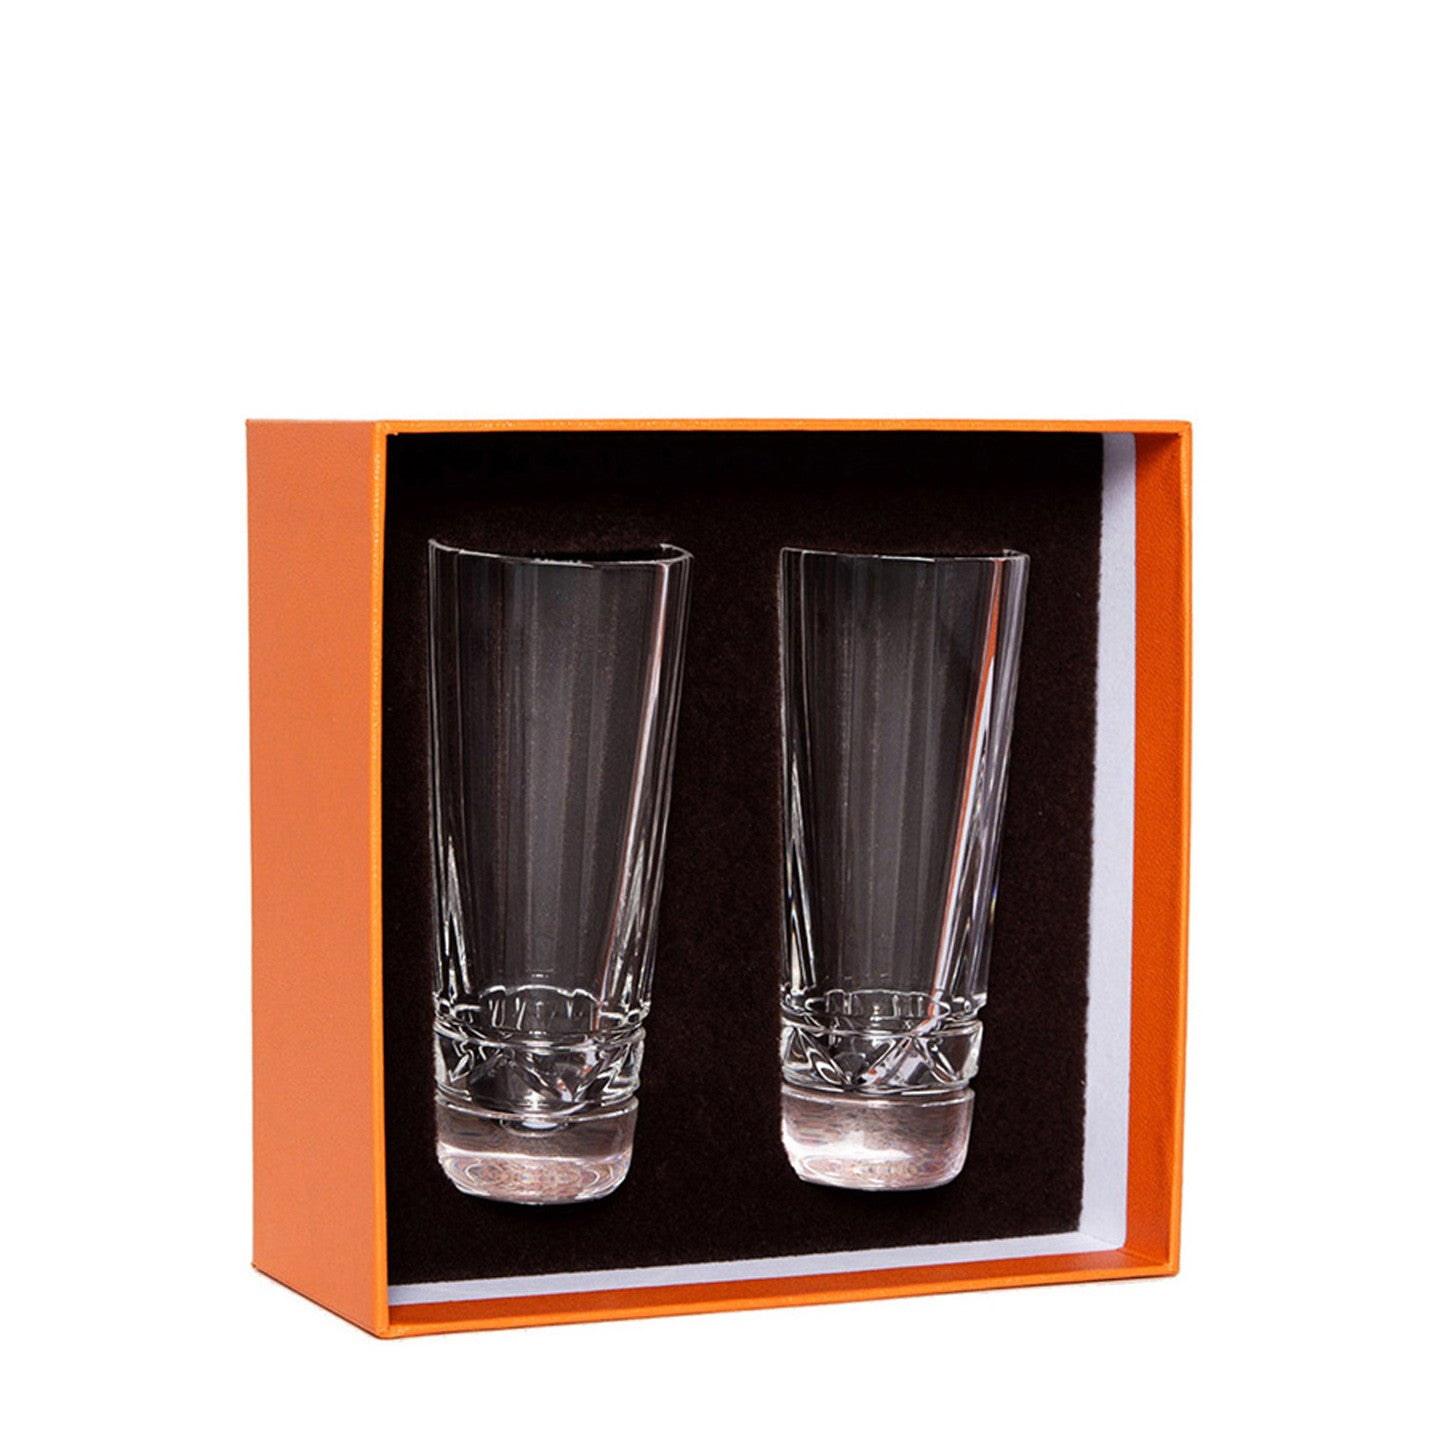 Find authentic preowned Hermès Crystal Vodka Shot Glasses at BunnyJack, where a portion of every sale goes to charity.